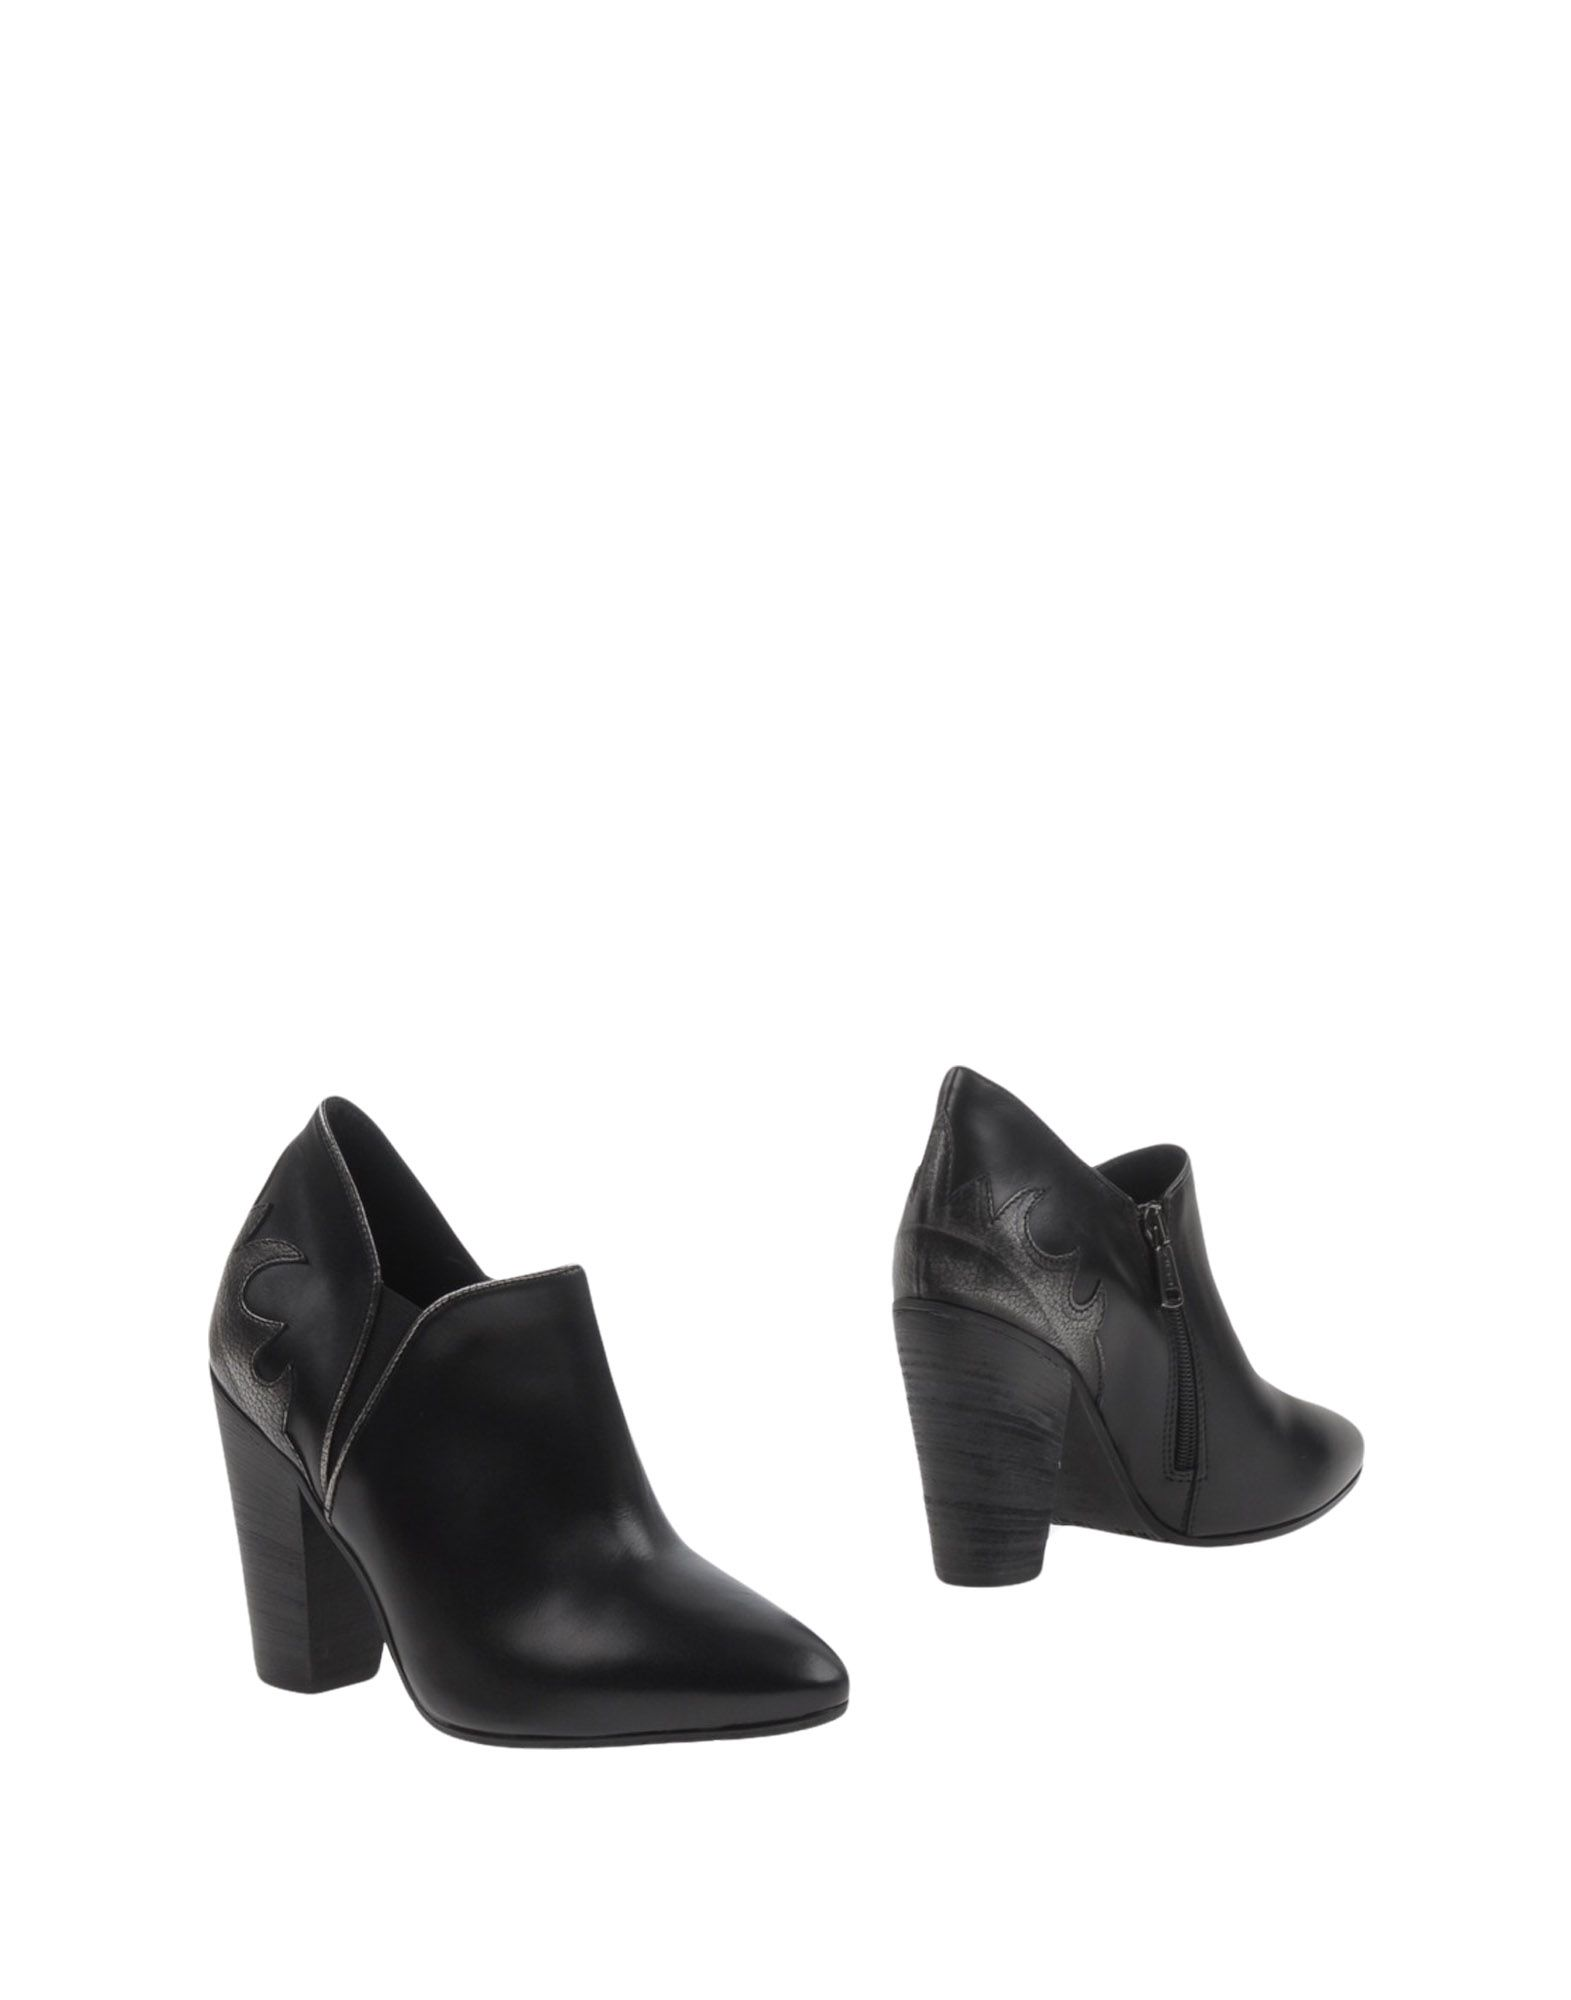 Bottine Tiffi Femme - Bottines Tiffi sur